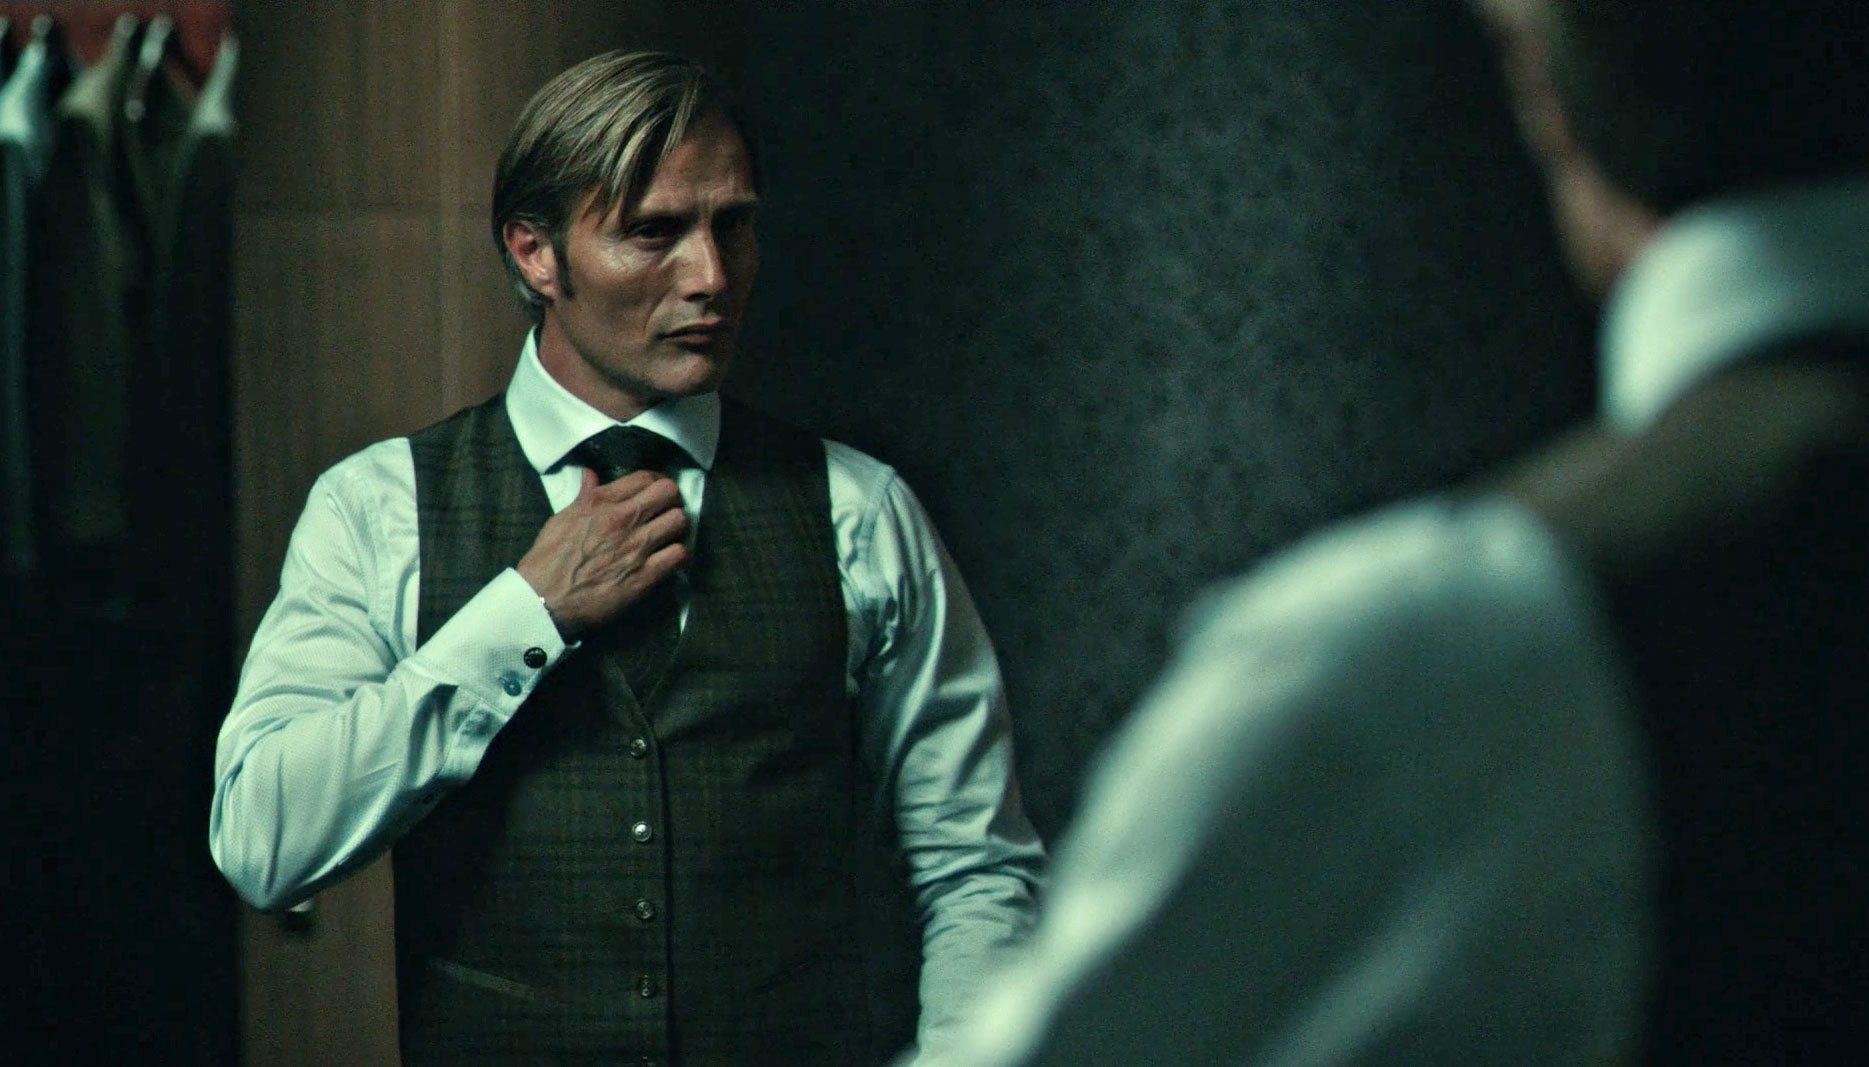 Mads Mikkelsen getting ready in the mirror wearing clothes designed by Christopher Hargadon